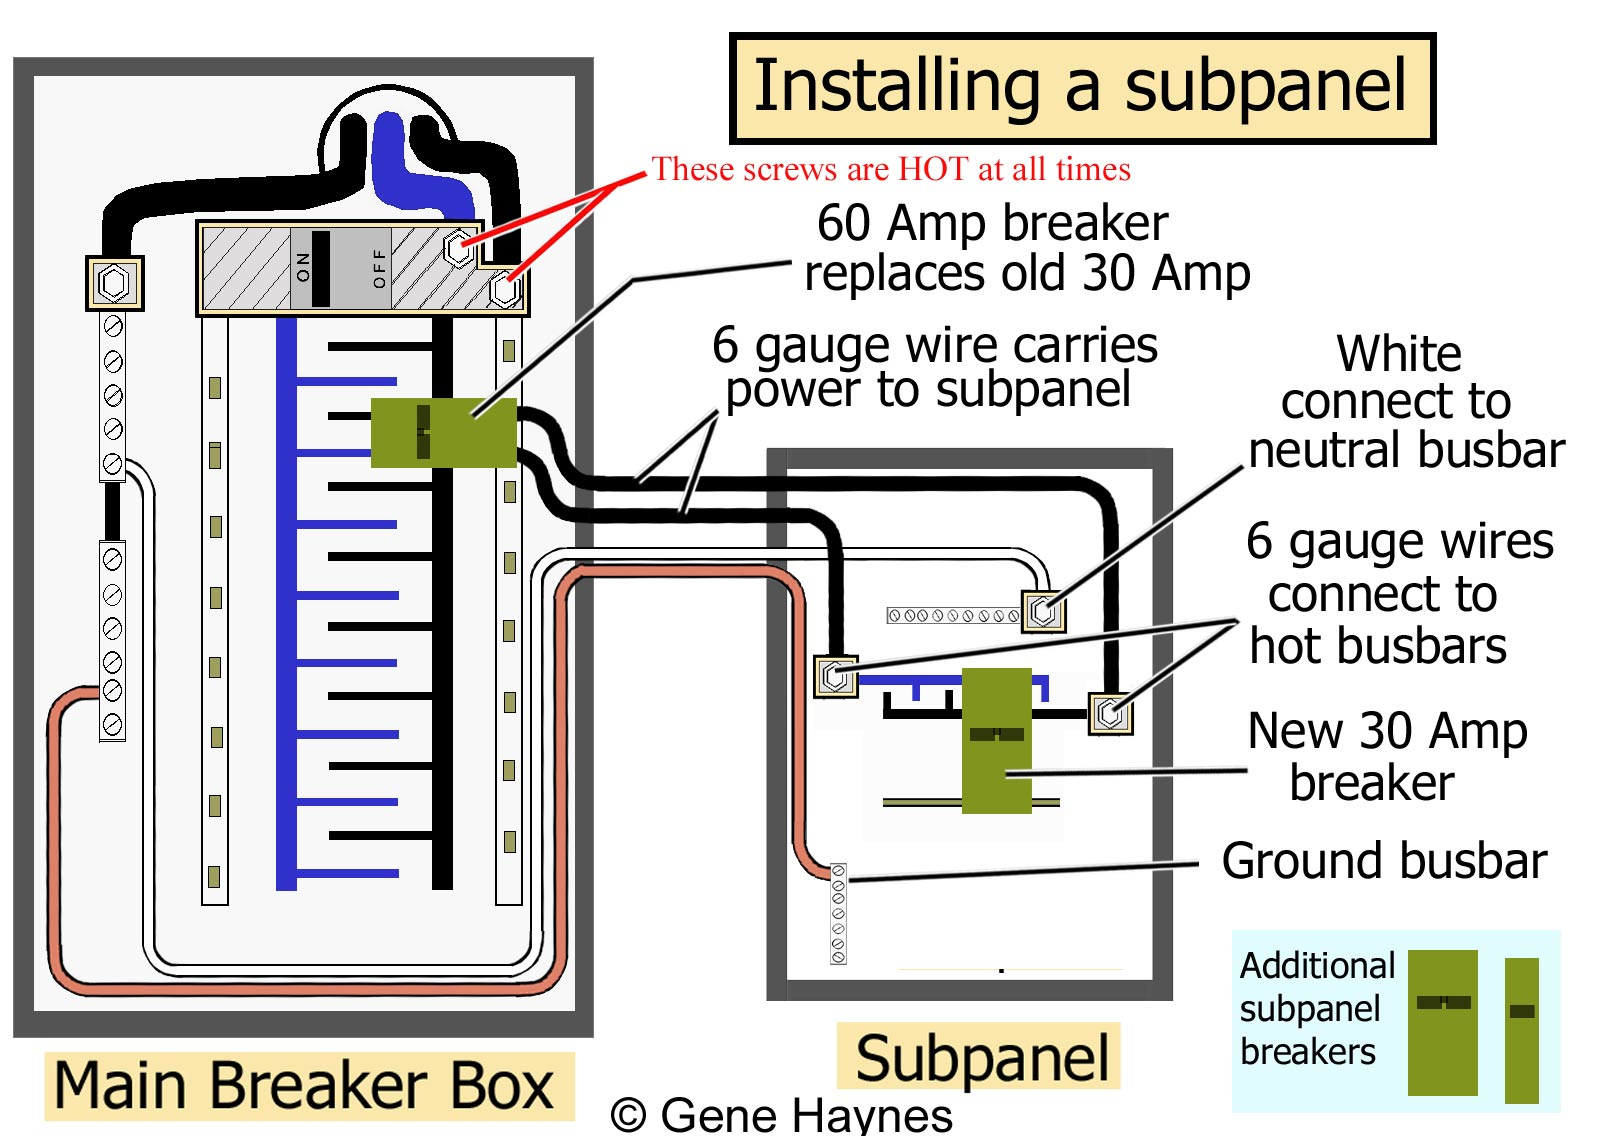 electrical sub panel wiring diagram ford 3000 tractor parts how to install a subpanel main lug see larger 60 amp with 240volt and 120volt use both breakers 1 150 breaker replaces any 240 in box